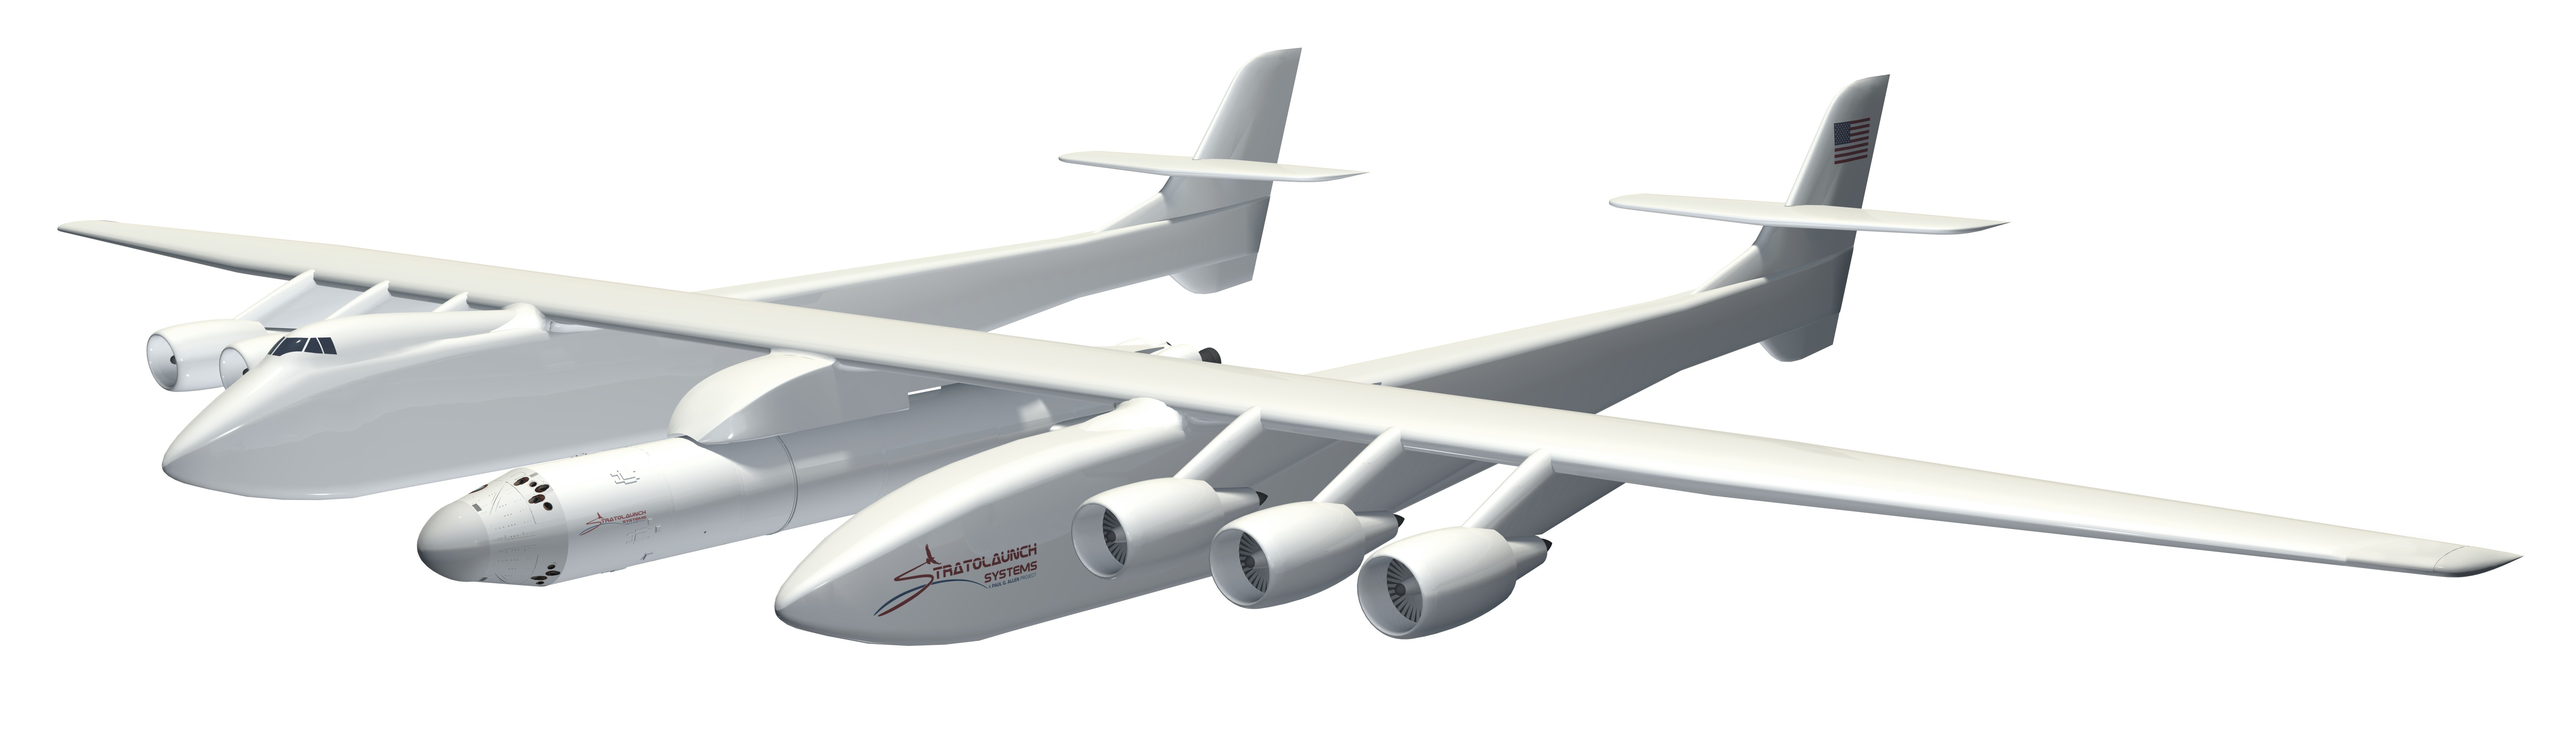 Stratolaunch and Falcon 5 Air (Stratolaunch and Dynetics) 2